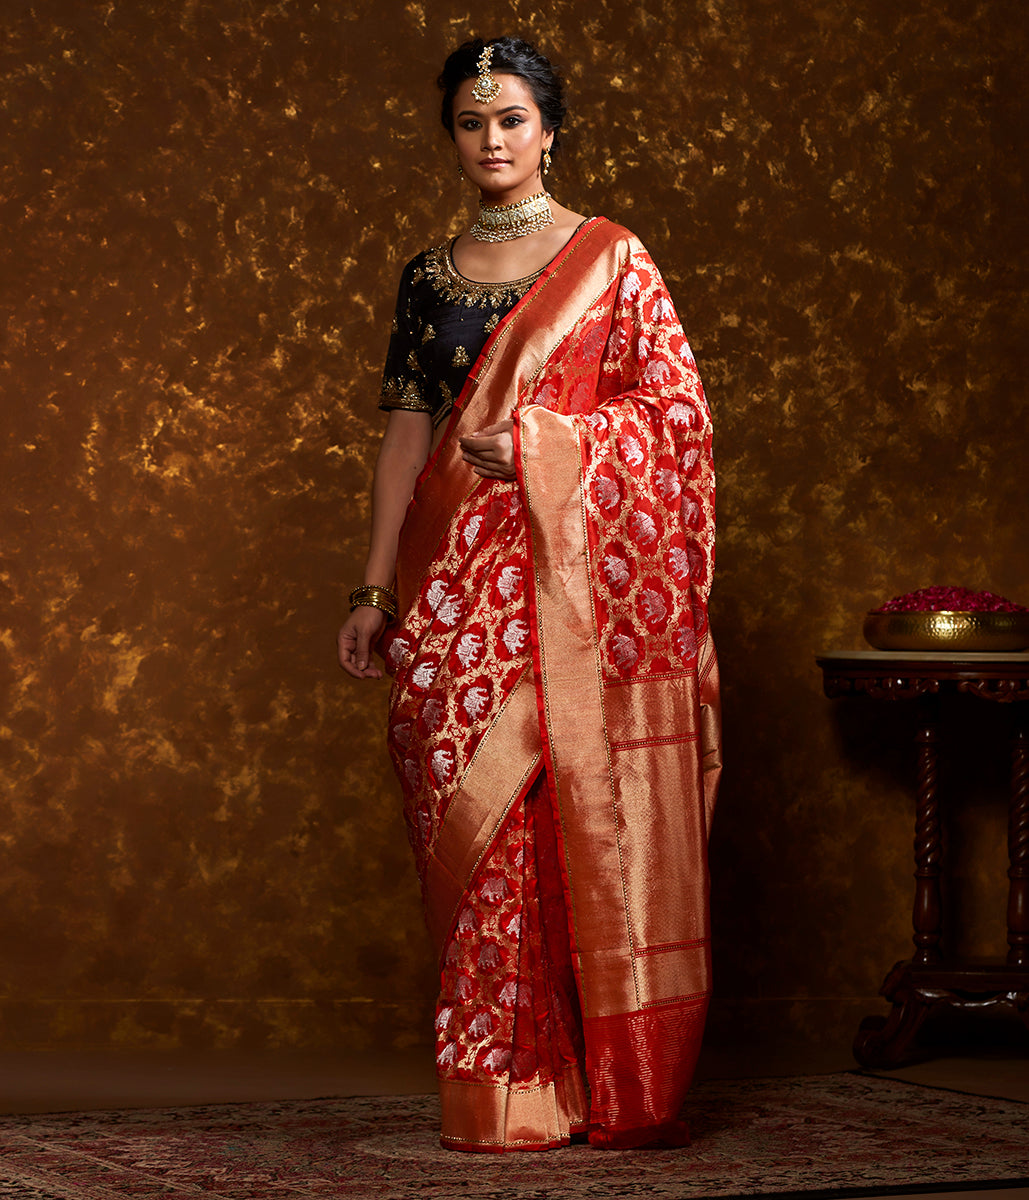 Handwoven Banarasi Shikargah Saree in Red with Sona Rupa Zari